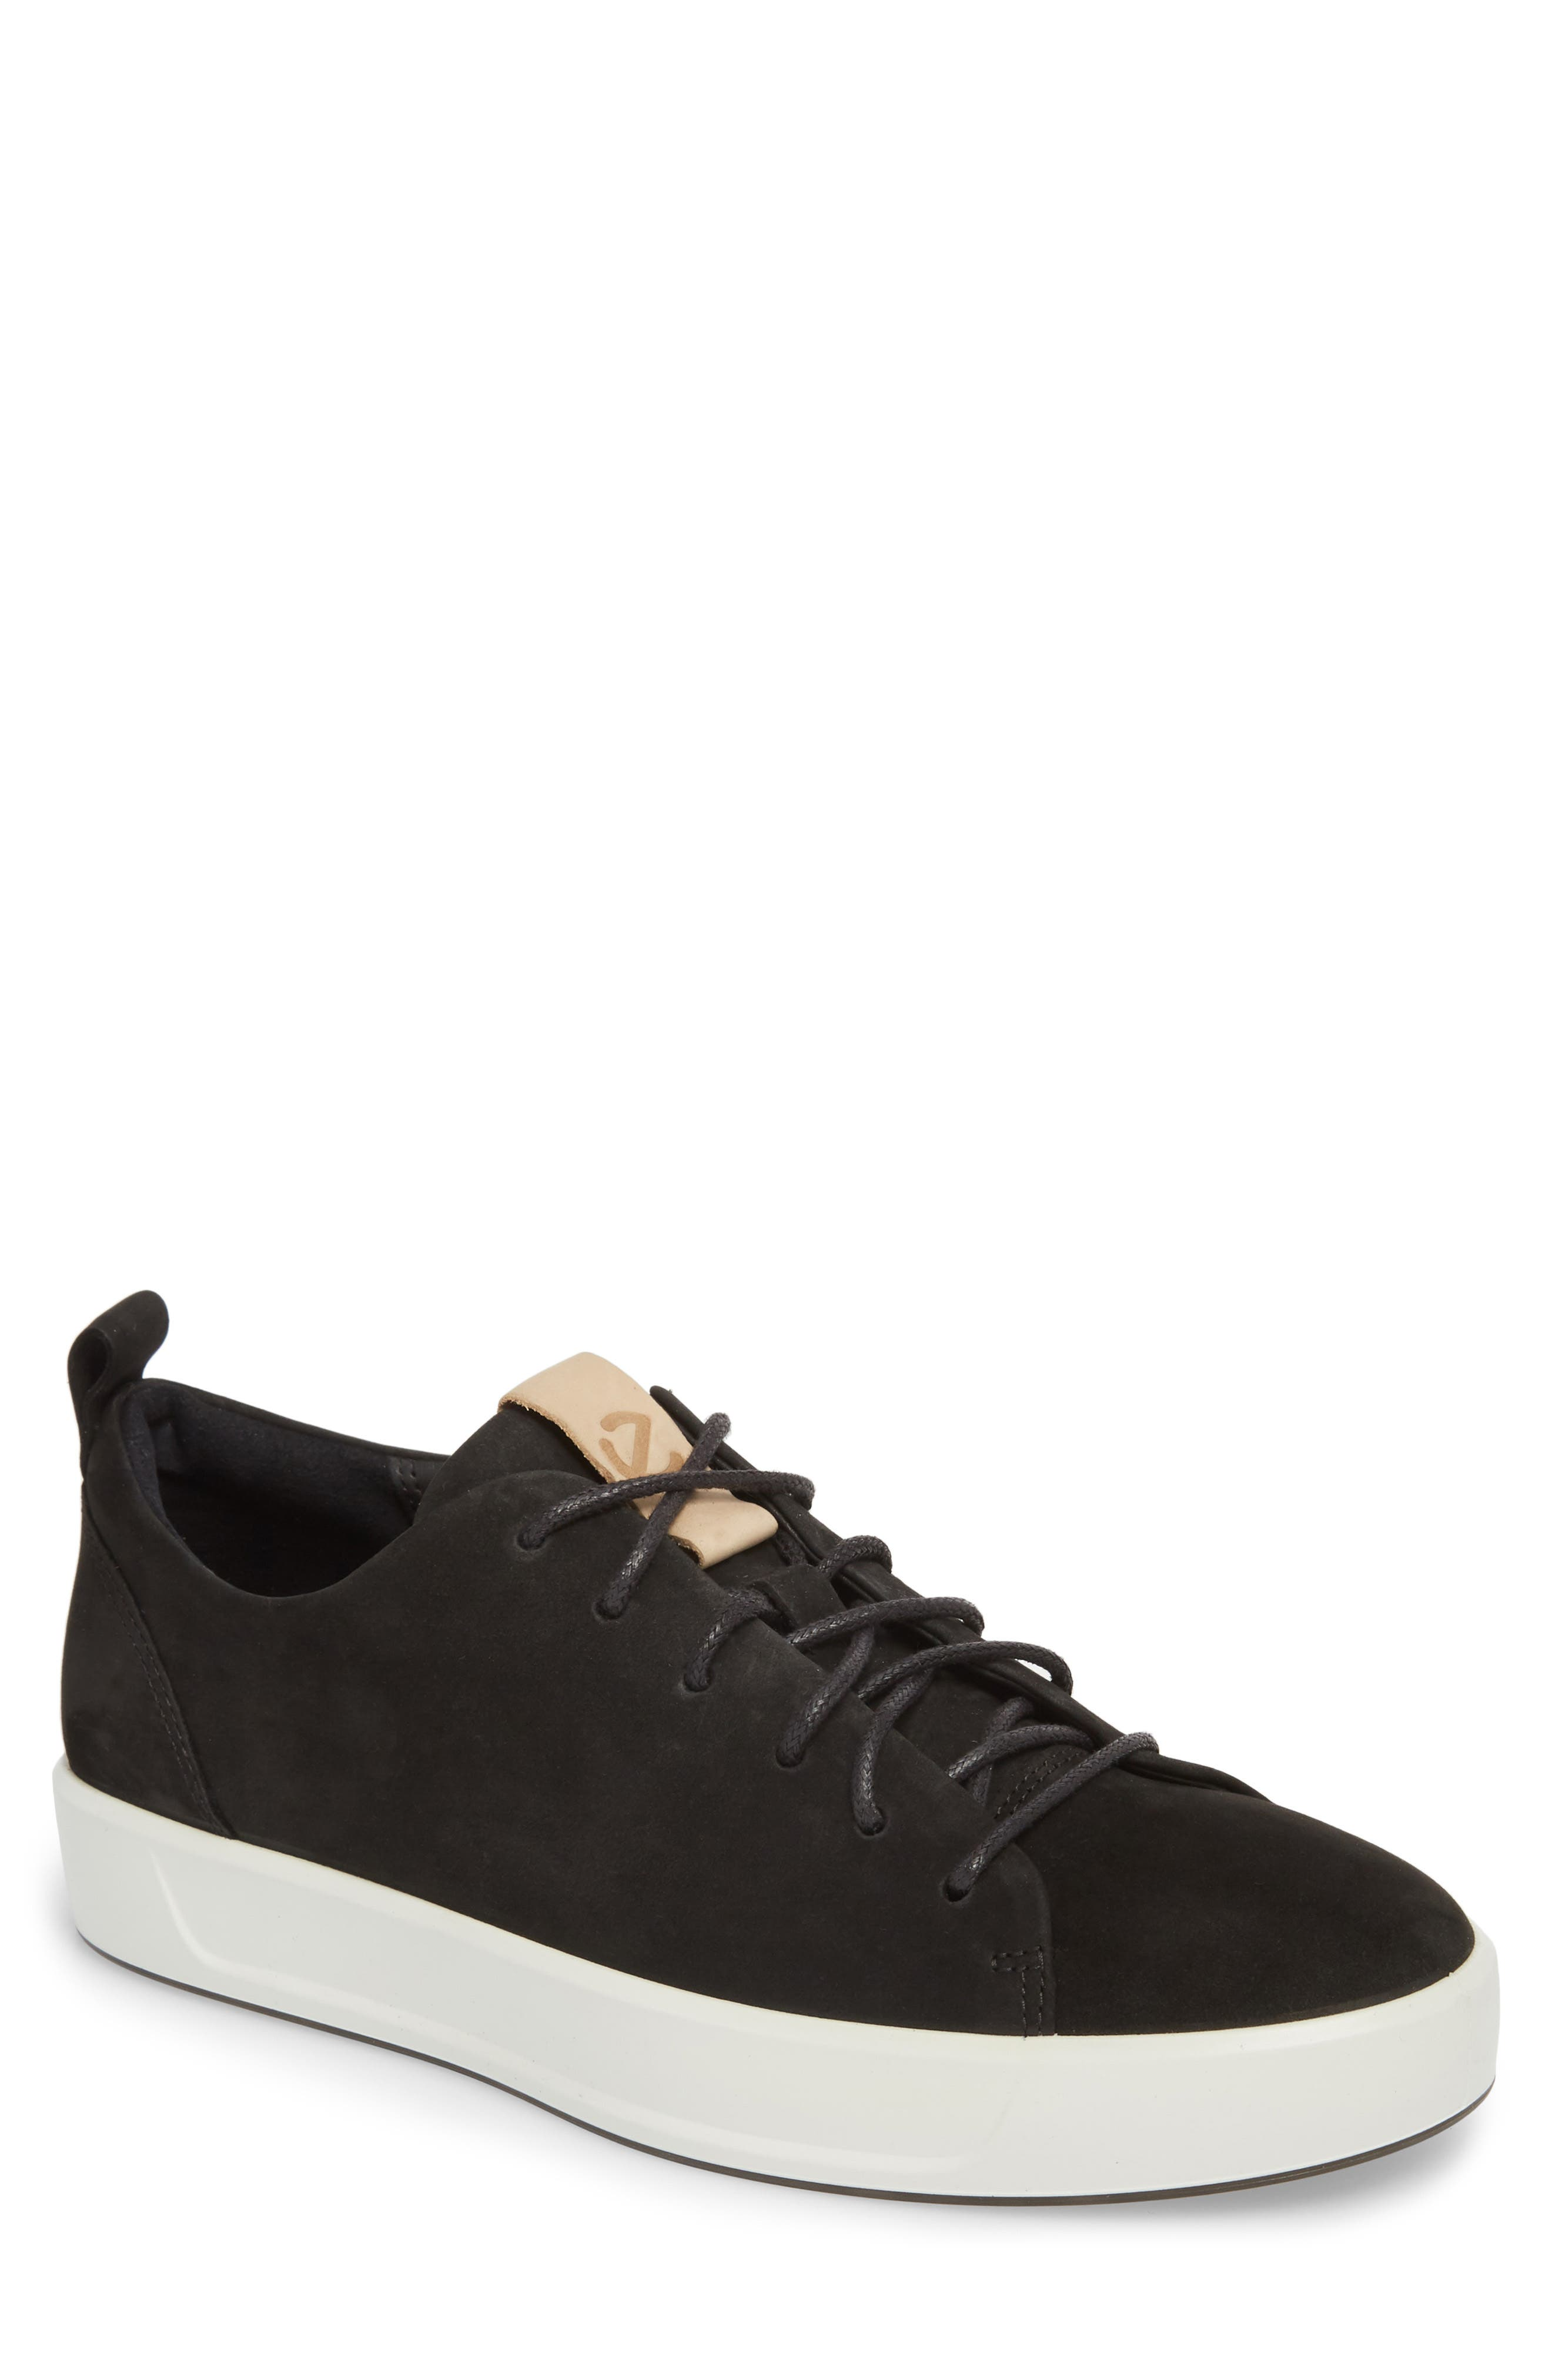 Main Image - ECCO Soft 8 Sneaker (Men)